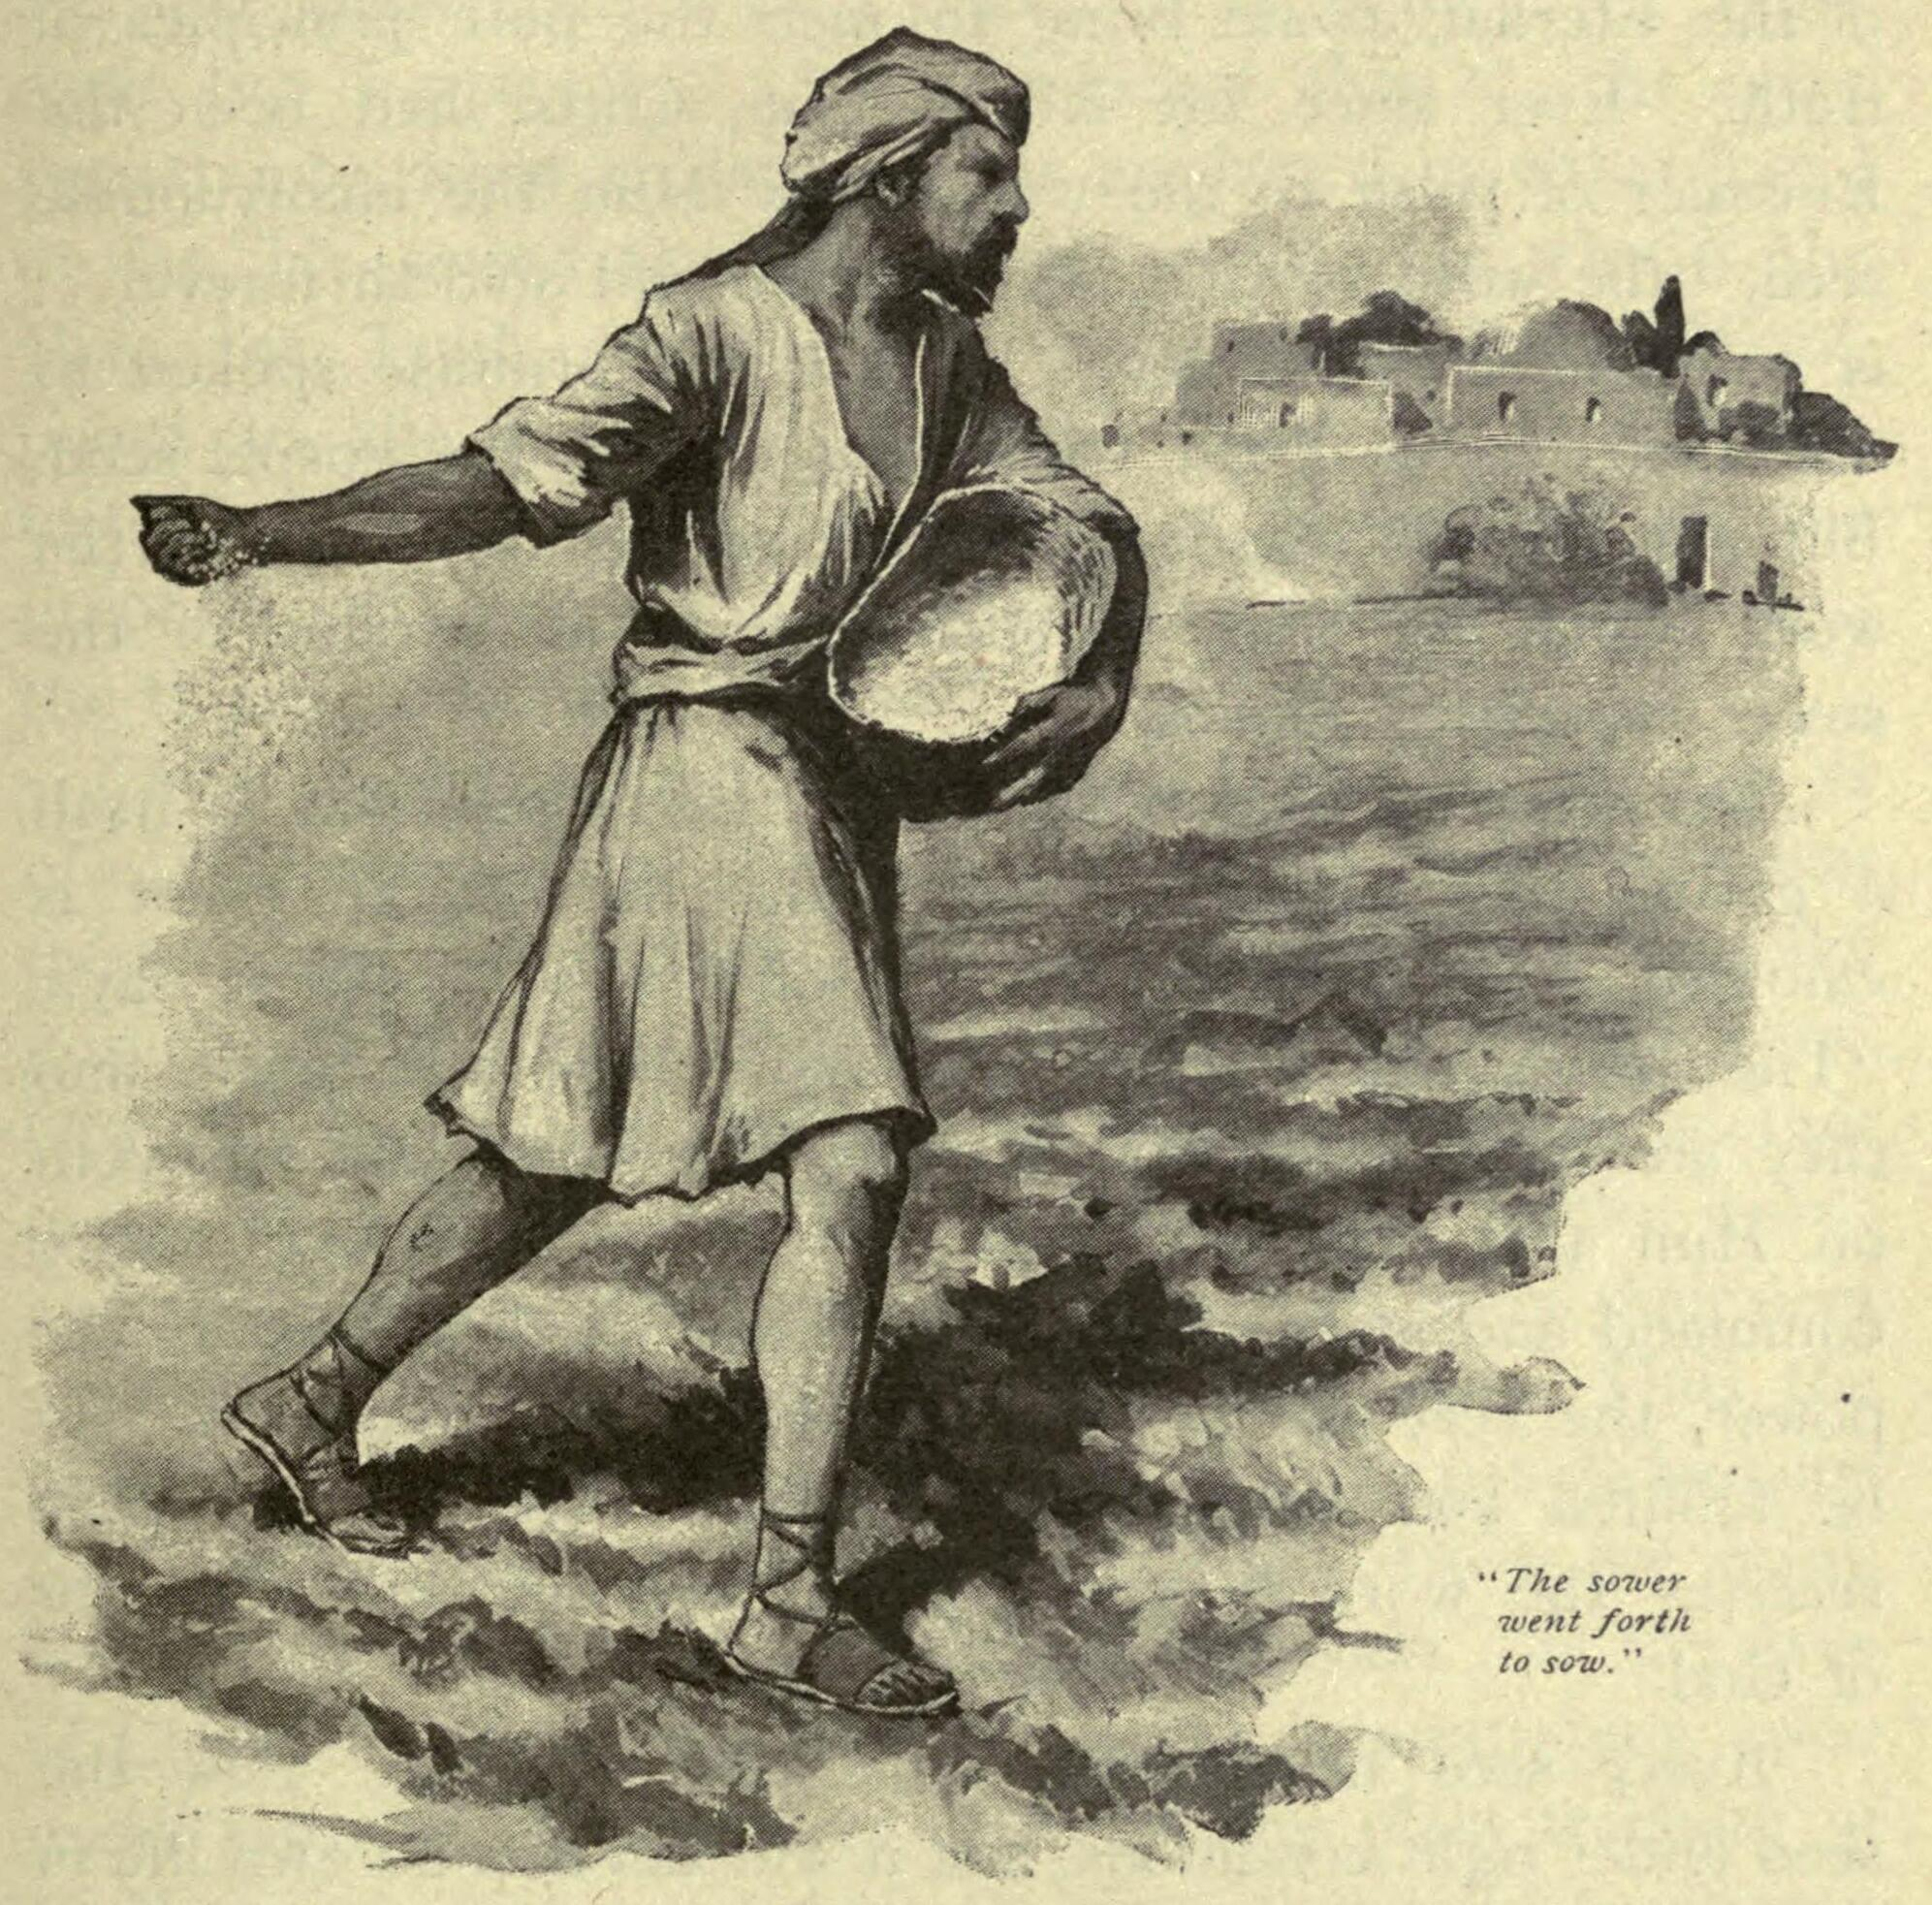 File:The sower went forth to sow.jpg